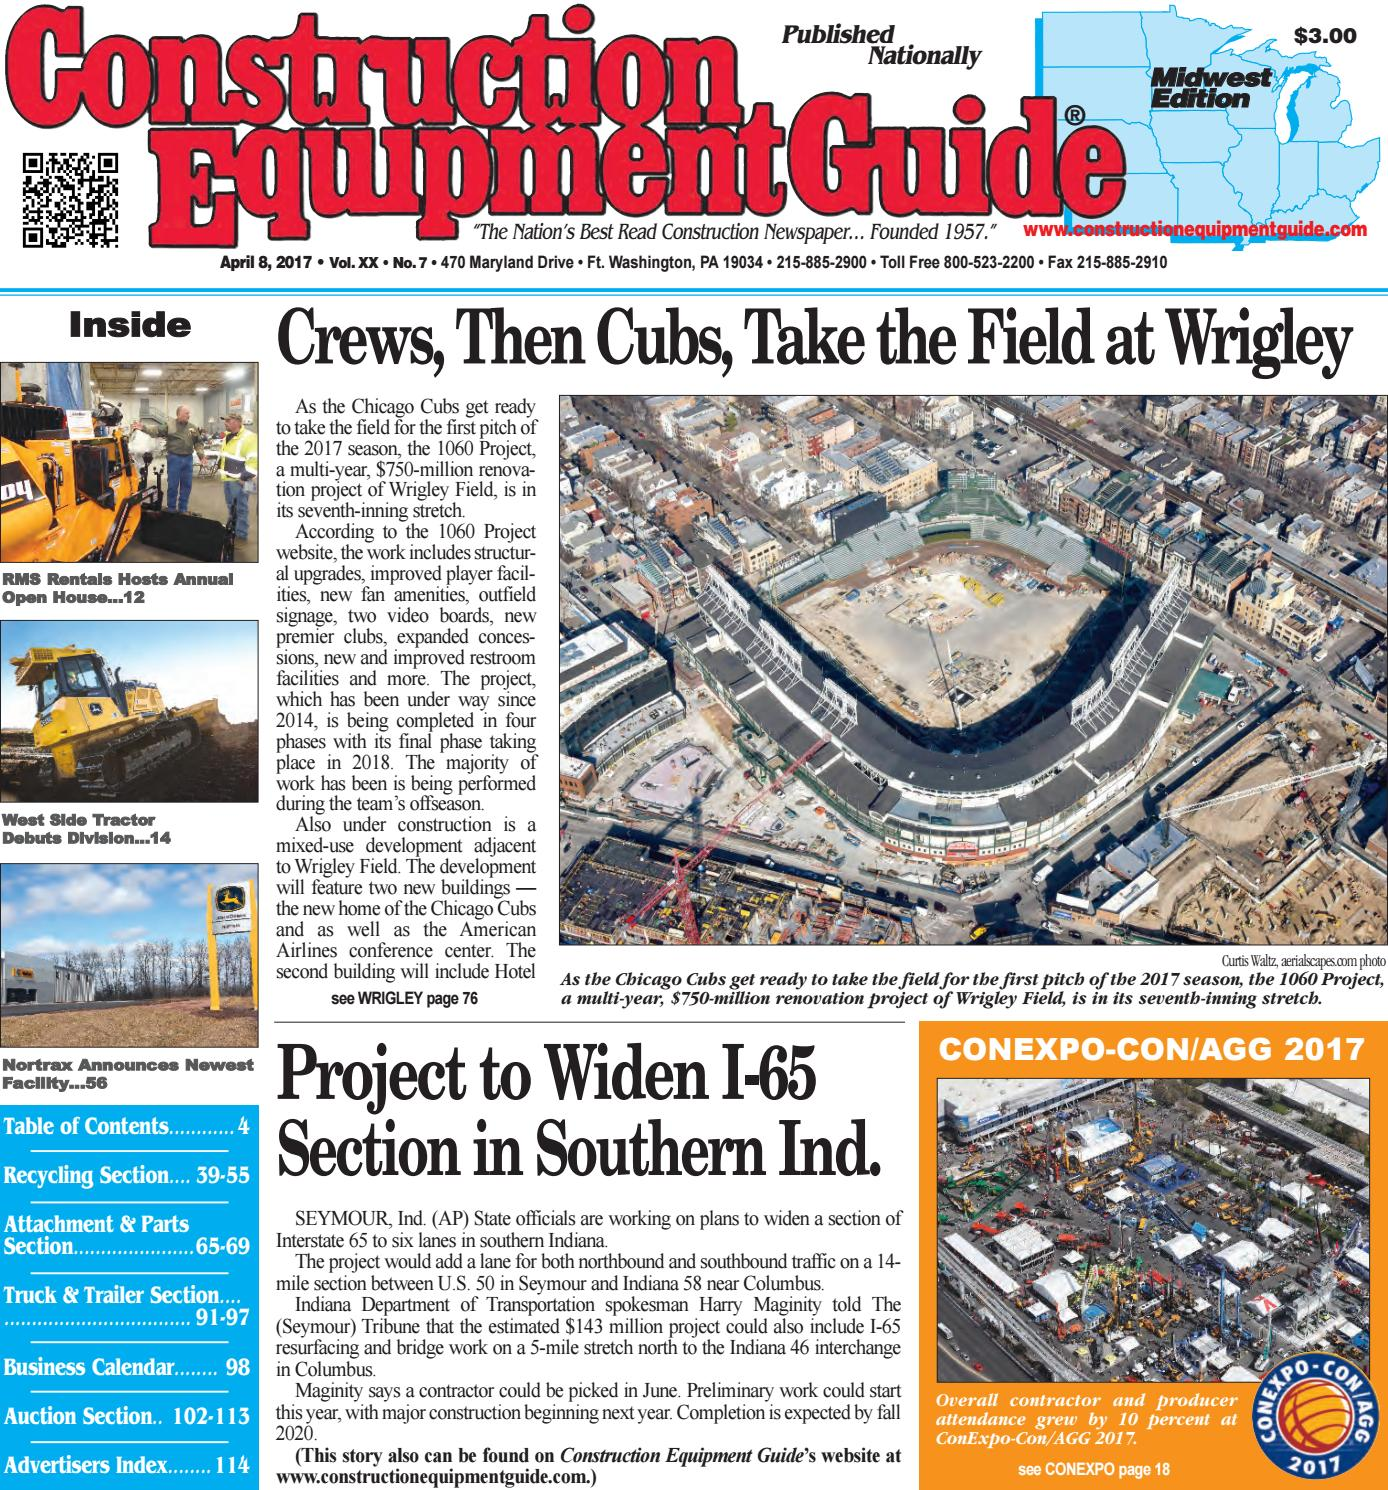 Midwest 7 April 10, 2017 by Construction Equipment Guide - issuu